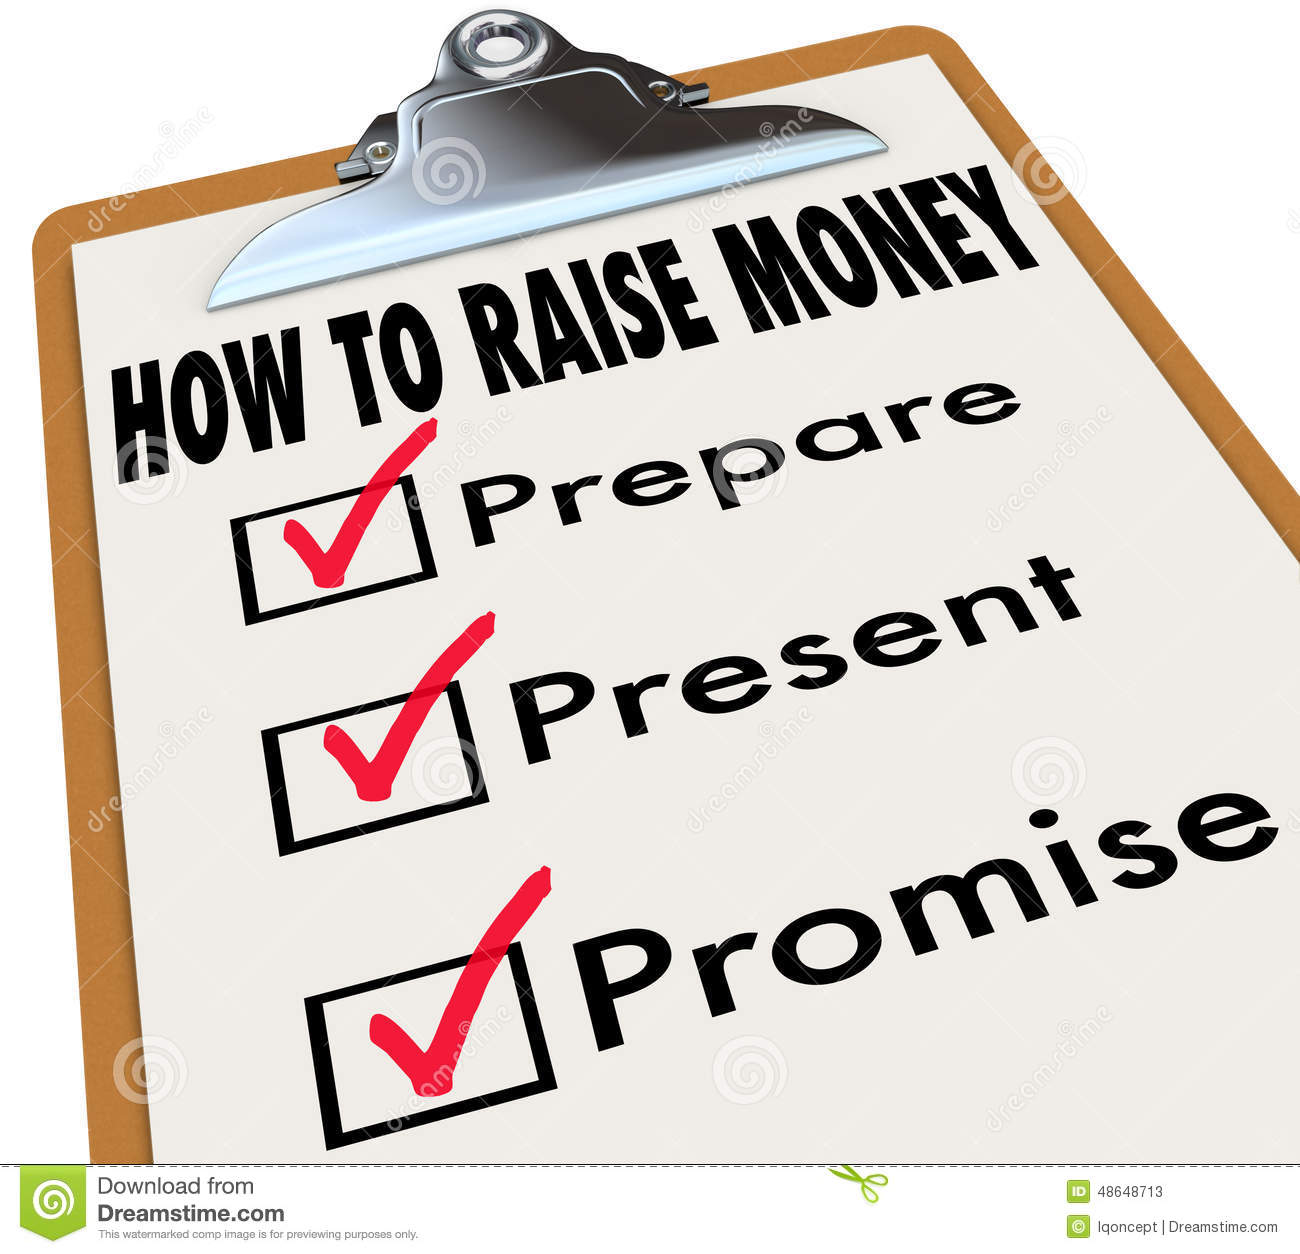 how to raise money for starting up a business Where to get money to start a business by janet attard last updated: jul 10, 2018 where can you get money to start your business start-up funding is one of the biggest challenges a new business needs to address.